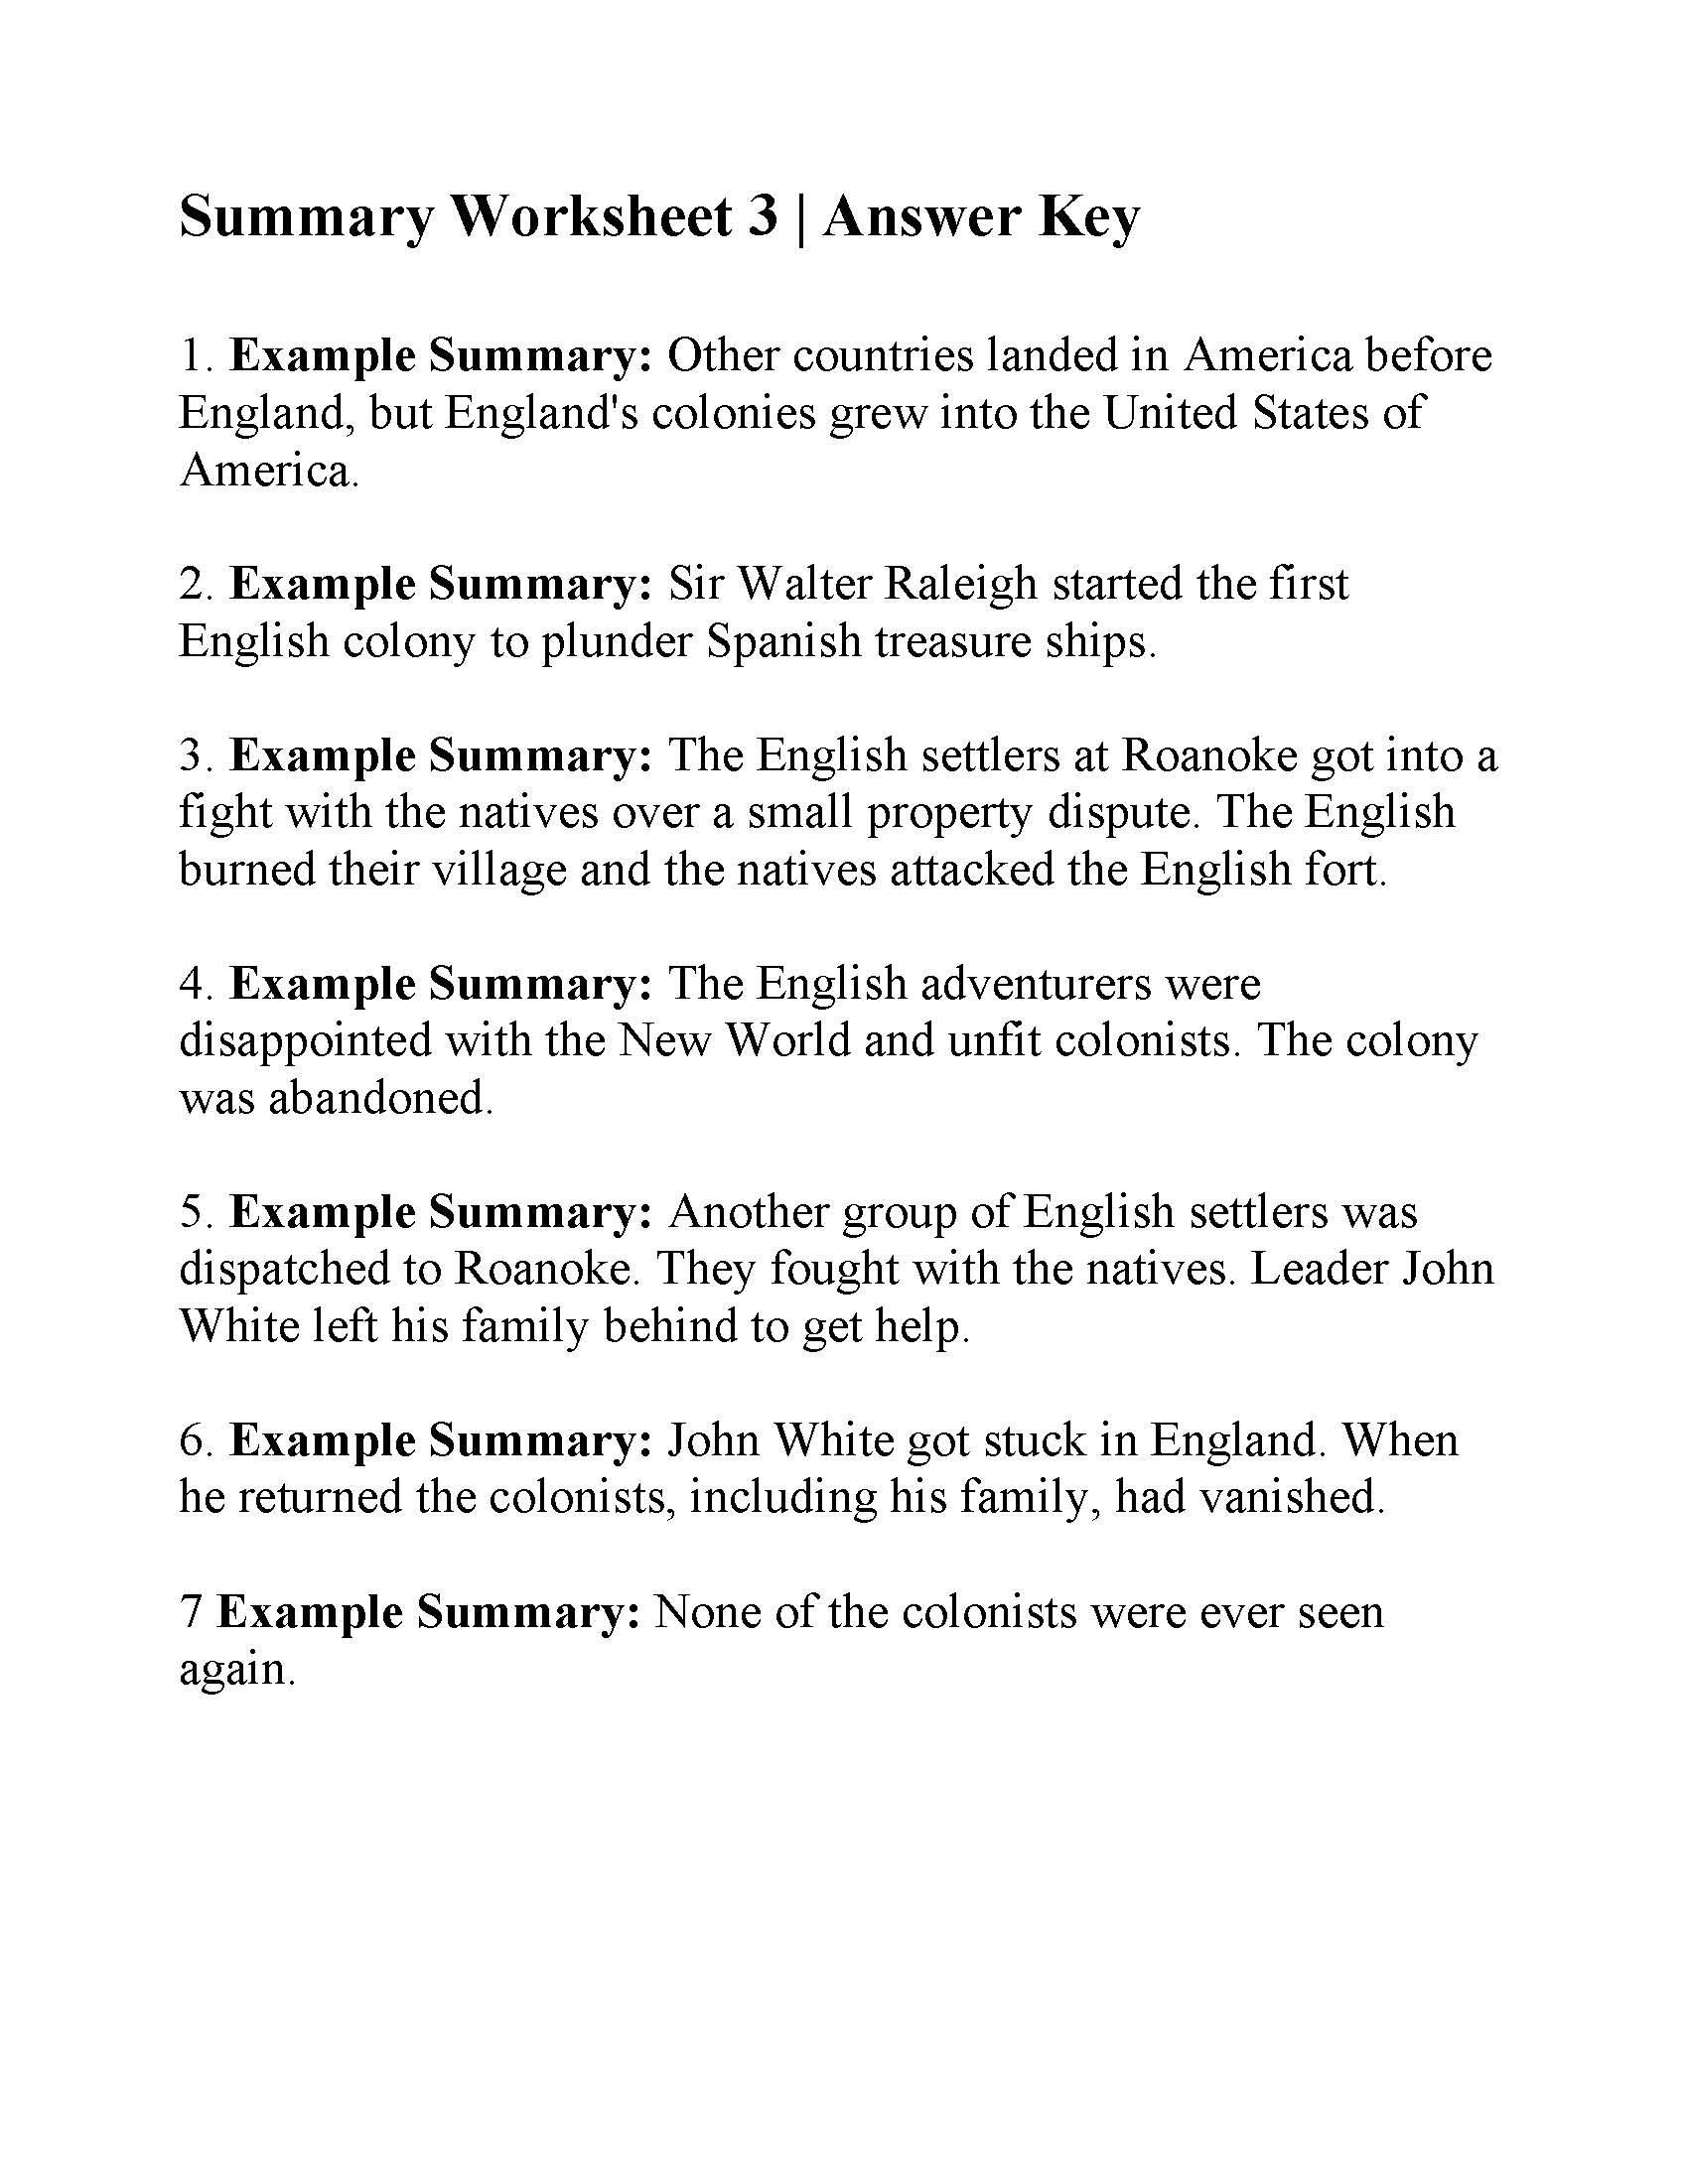 Summary Worksheets 2nd Grade This is the Answer Key for the Summary Worksheet 3